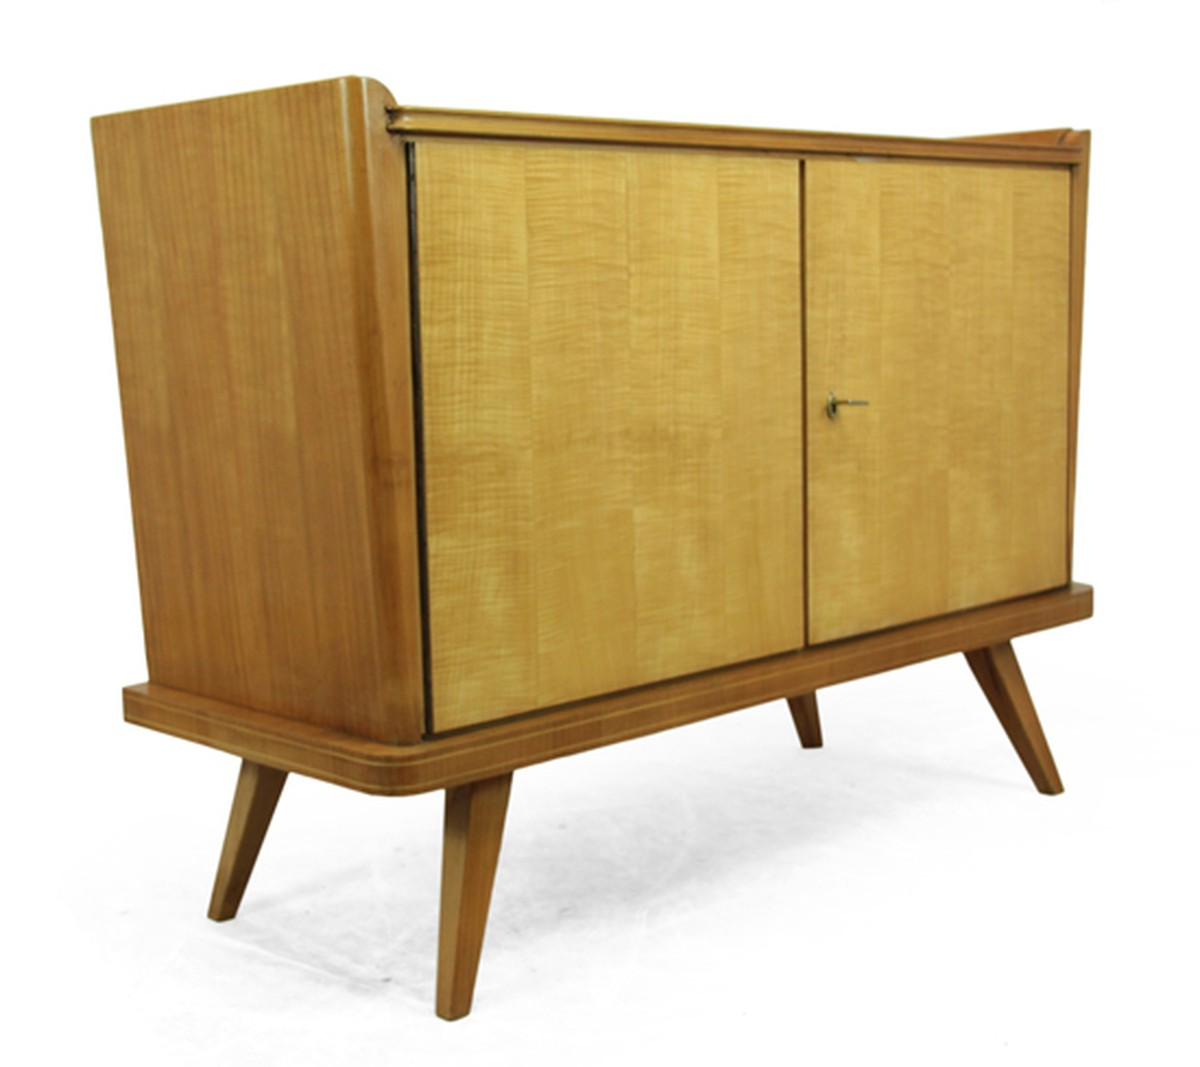 secondhand vintage and reclaimed 60 39 s vintage mid century sideboard london. Black Bedroom Furniture Sets. Home Design Ideas